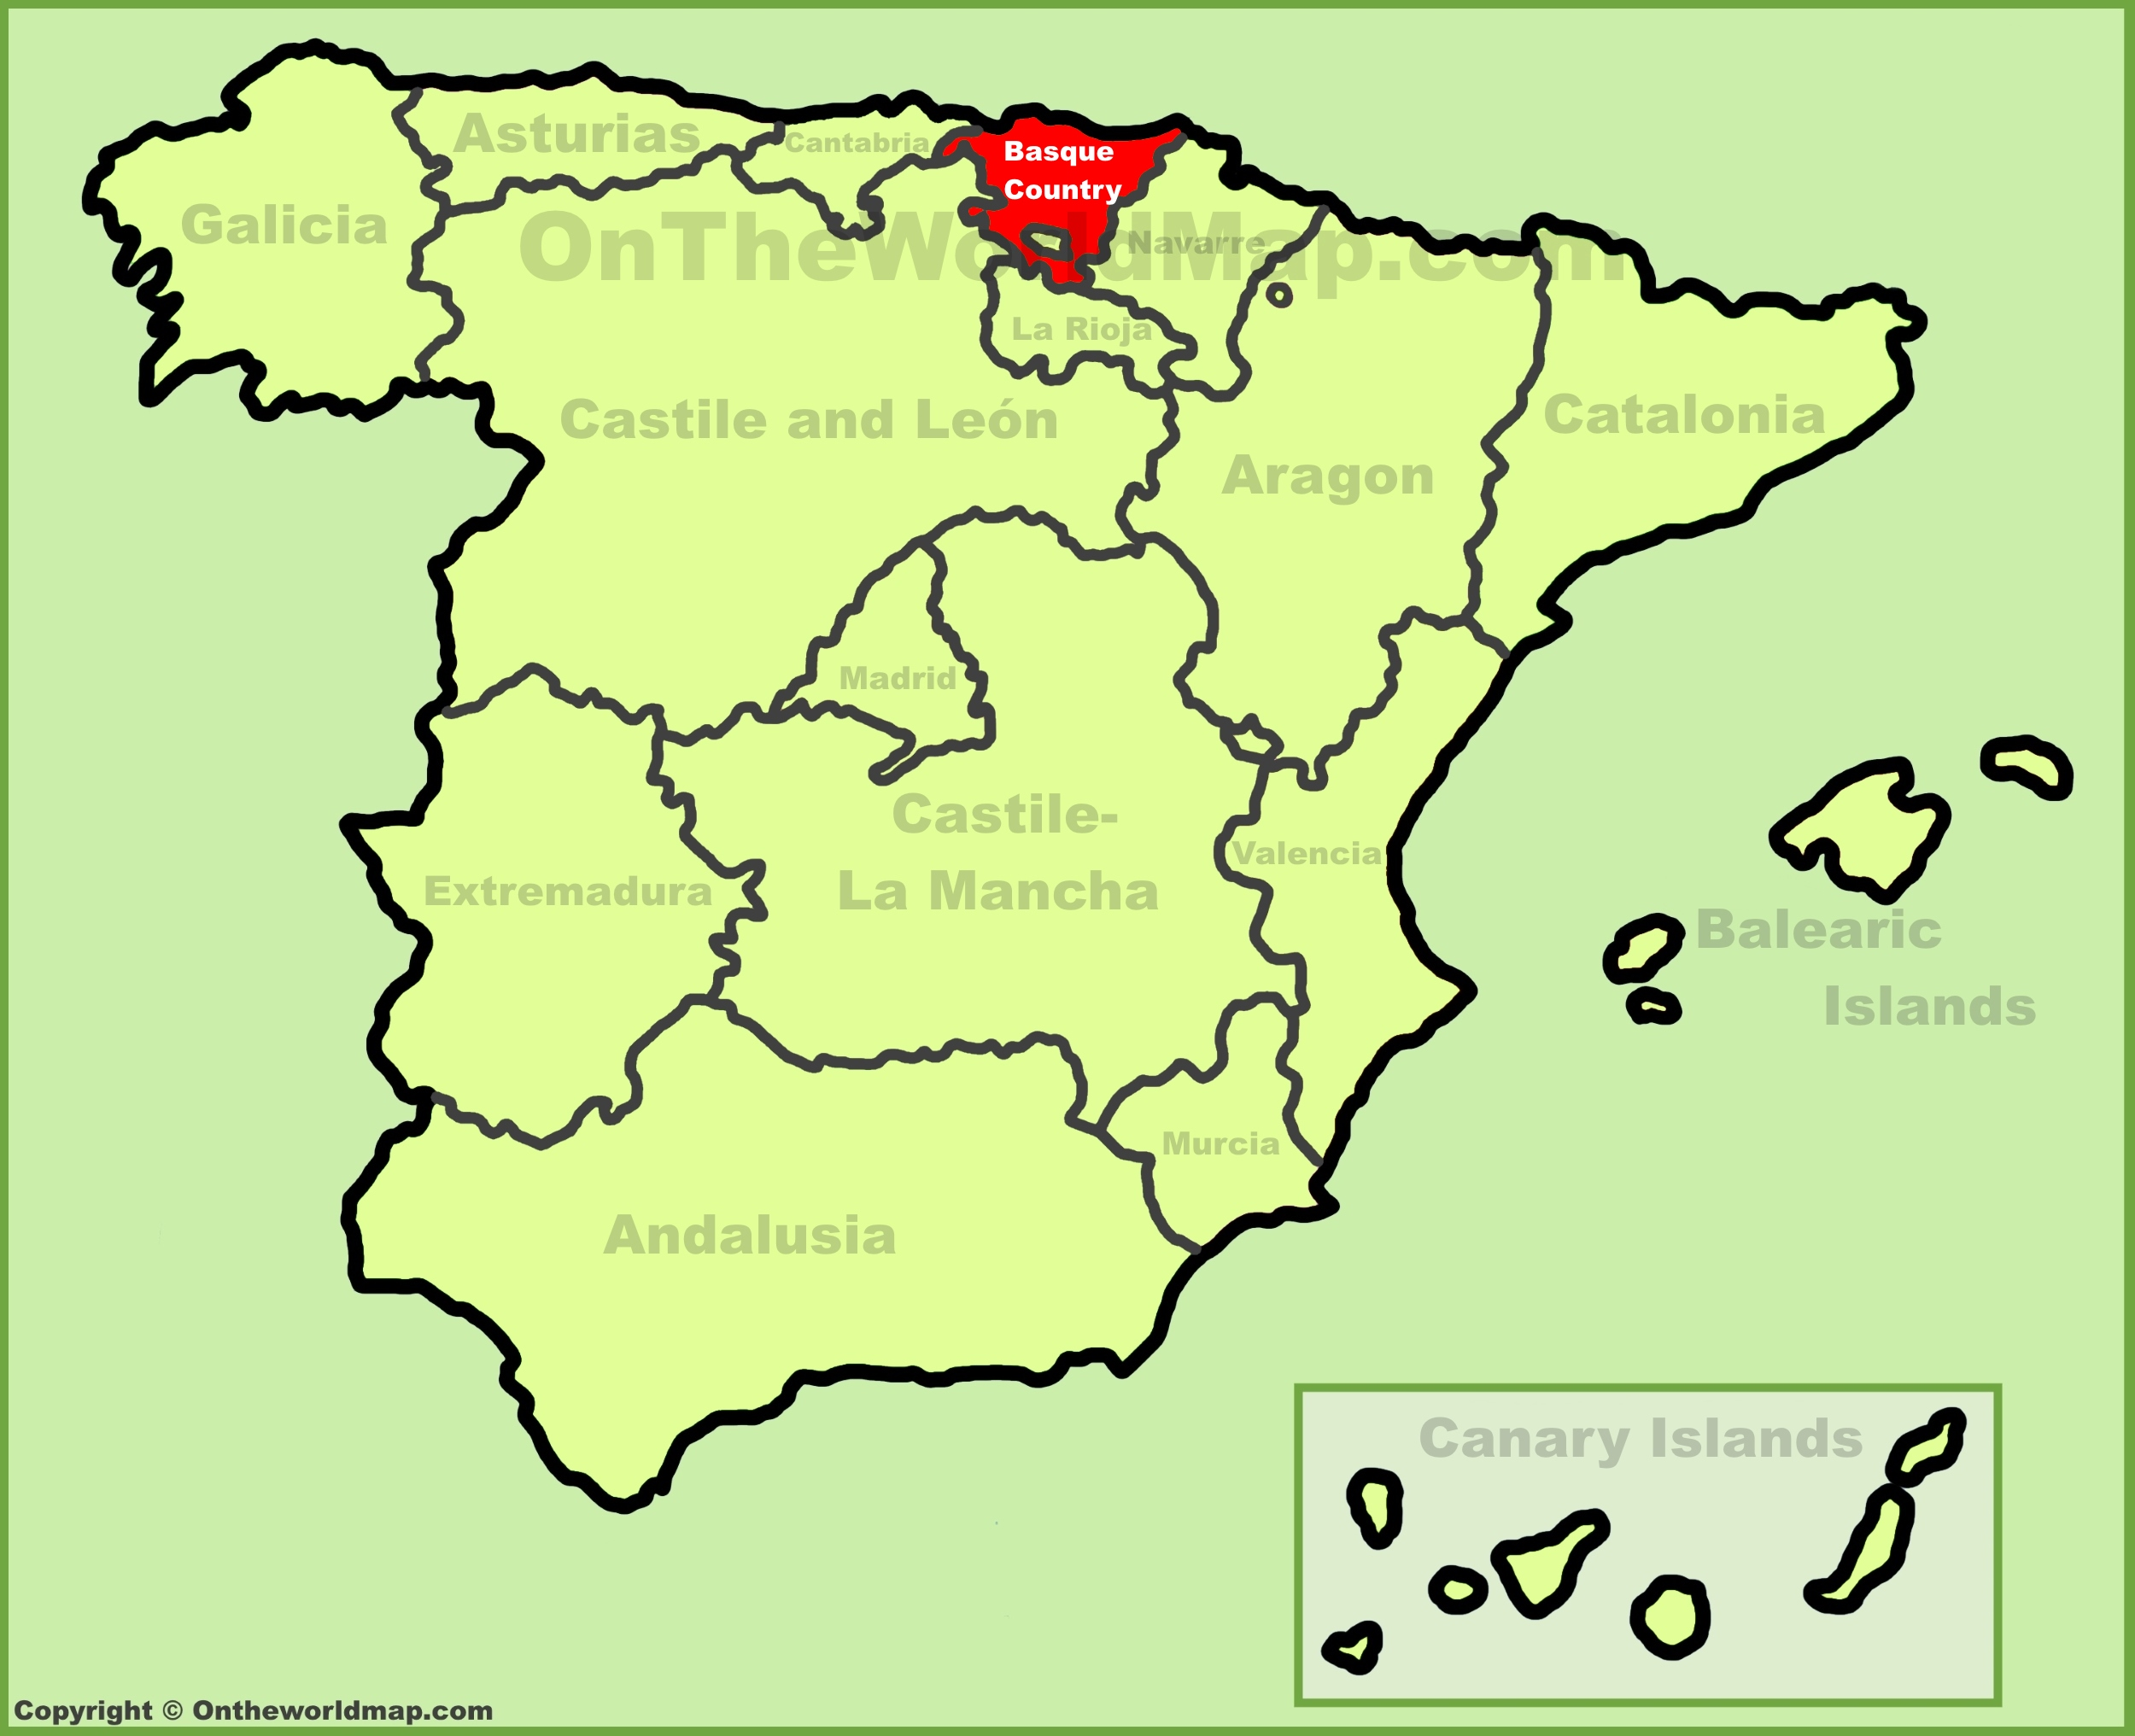 Basque Map Of Spain.Basque Country Maps Spain Maps Of Basque Country Euskadi